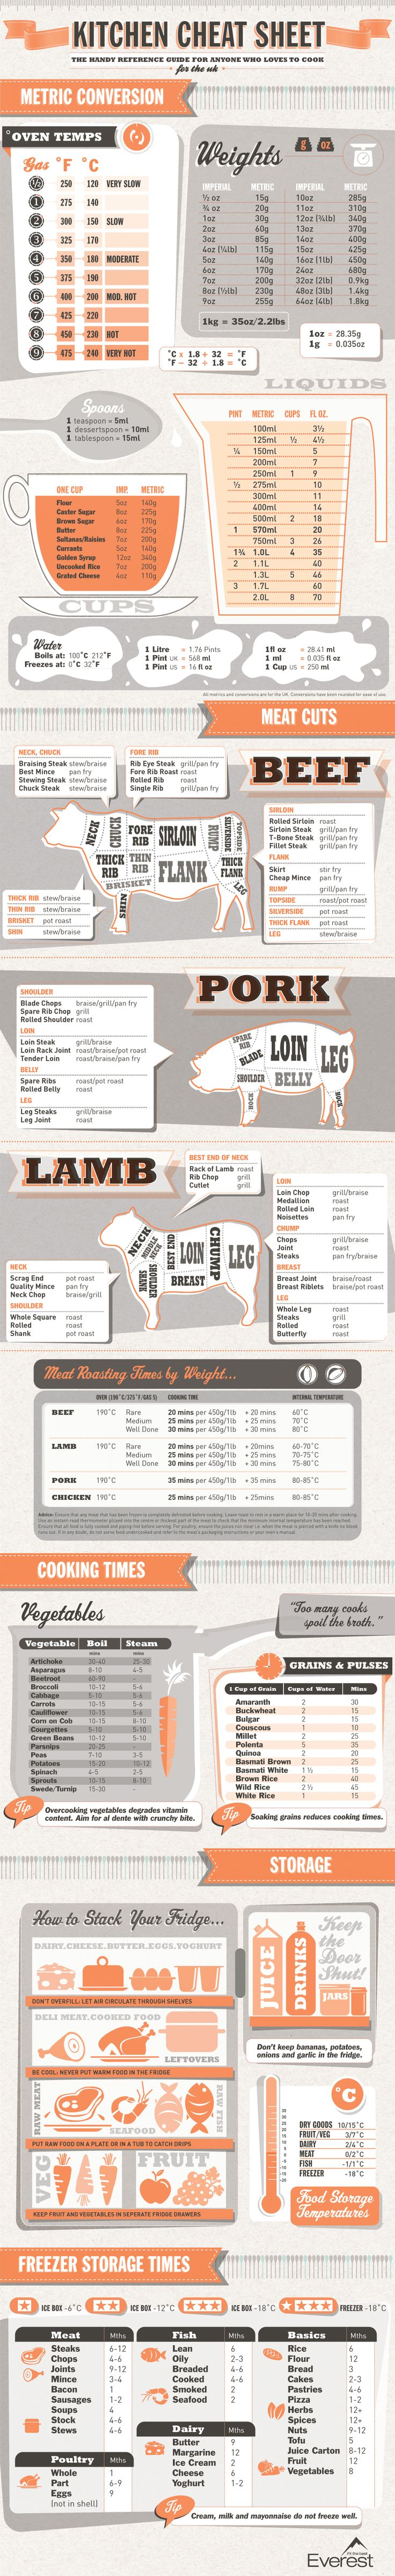 Kitchen Cheat Sheet...I need to hang this one inside the pantry!! #kitchencheatsheet